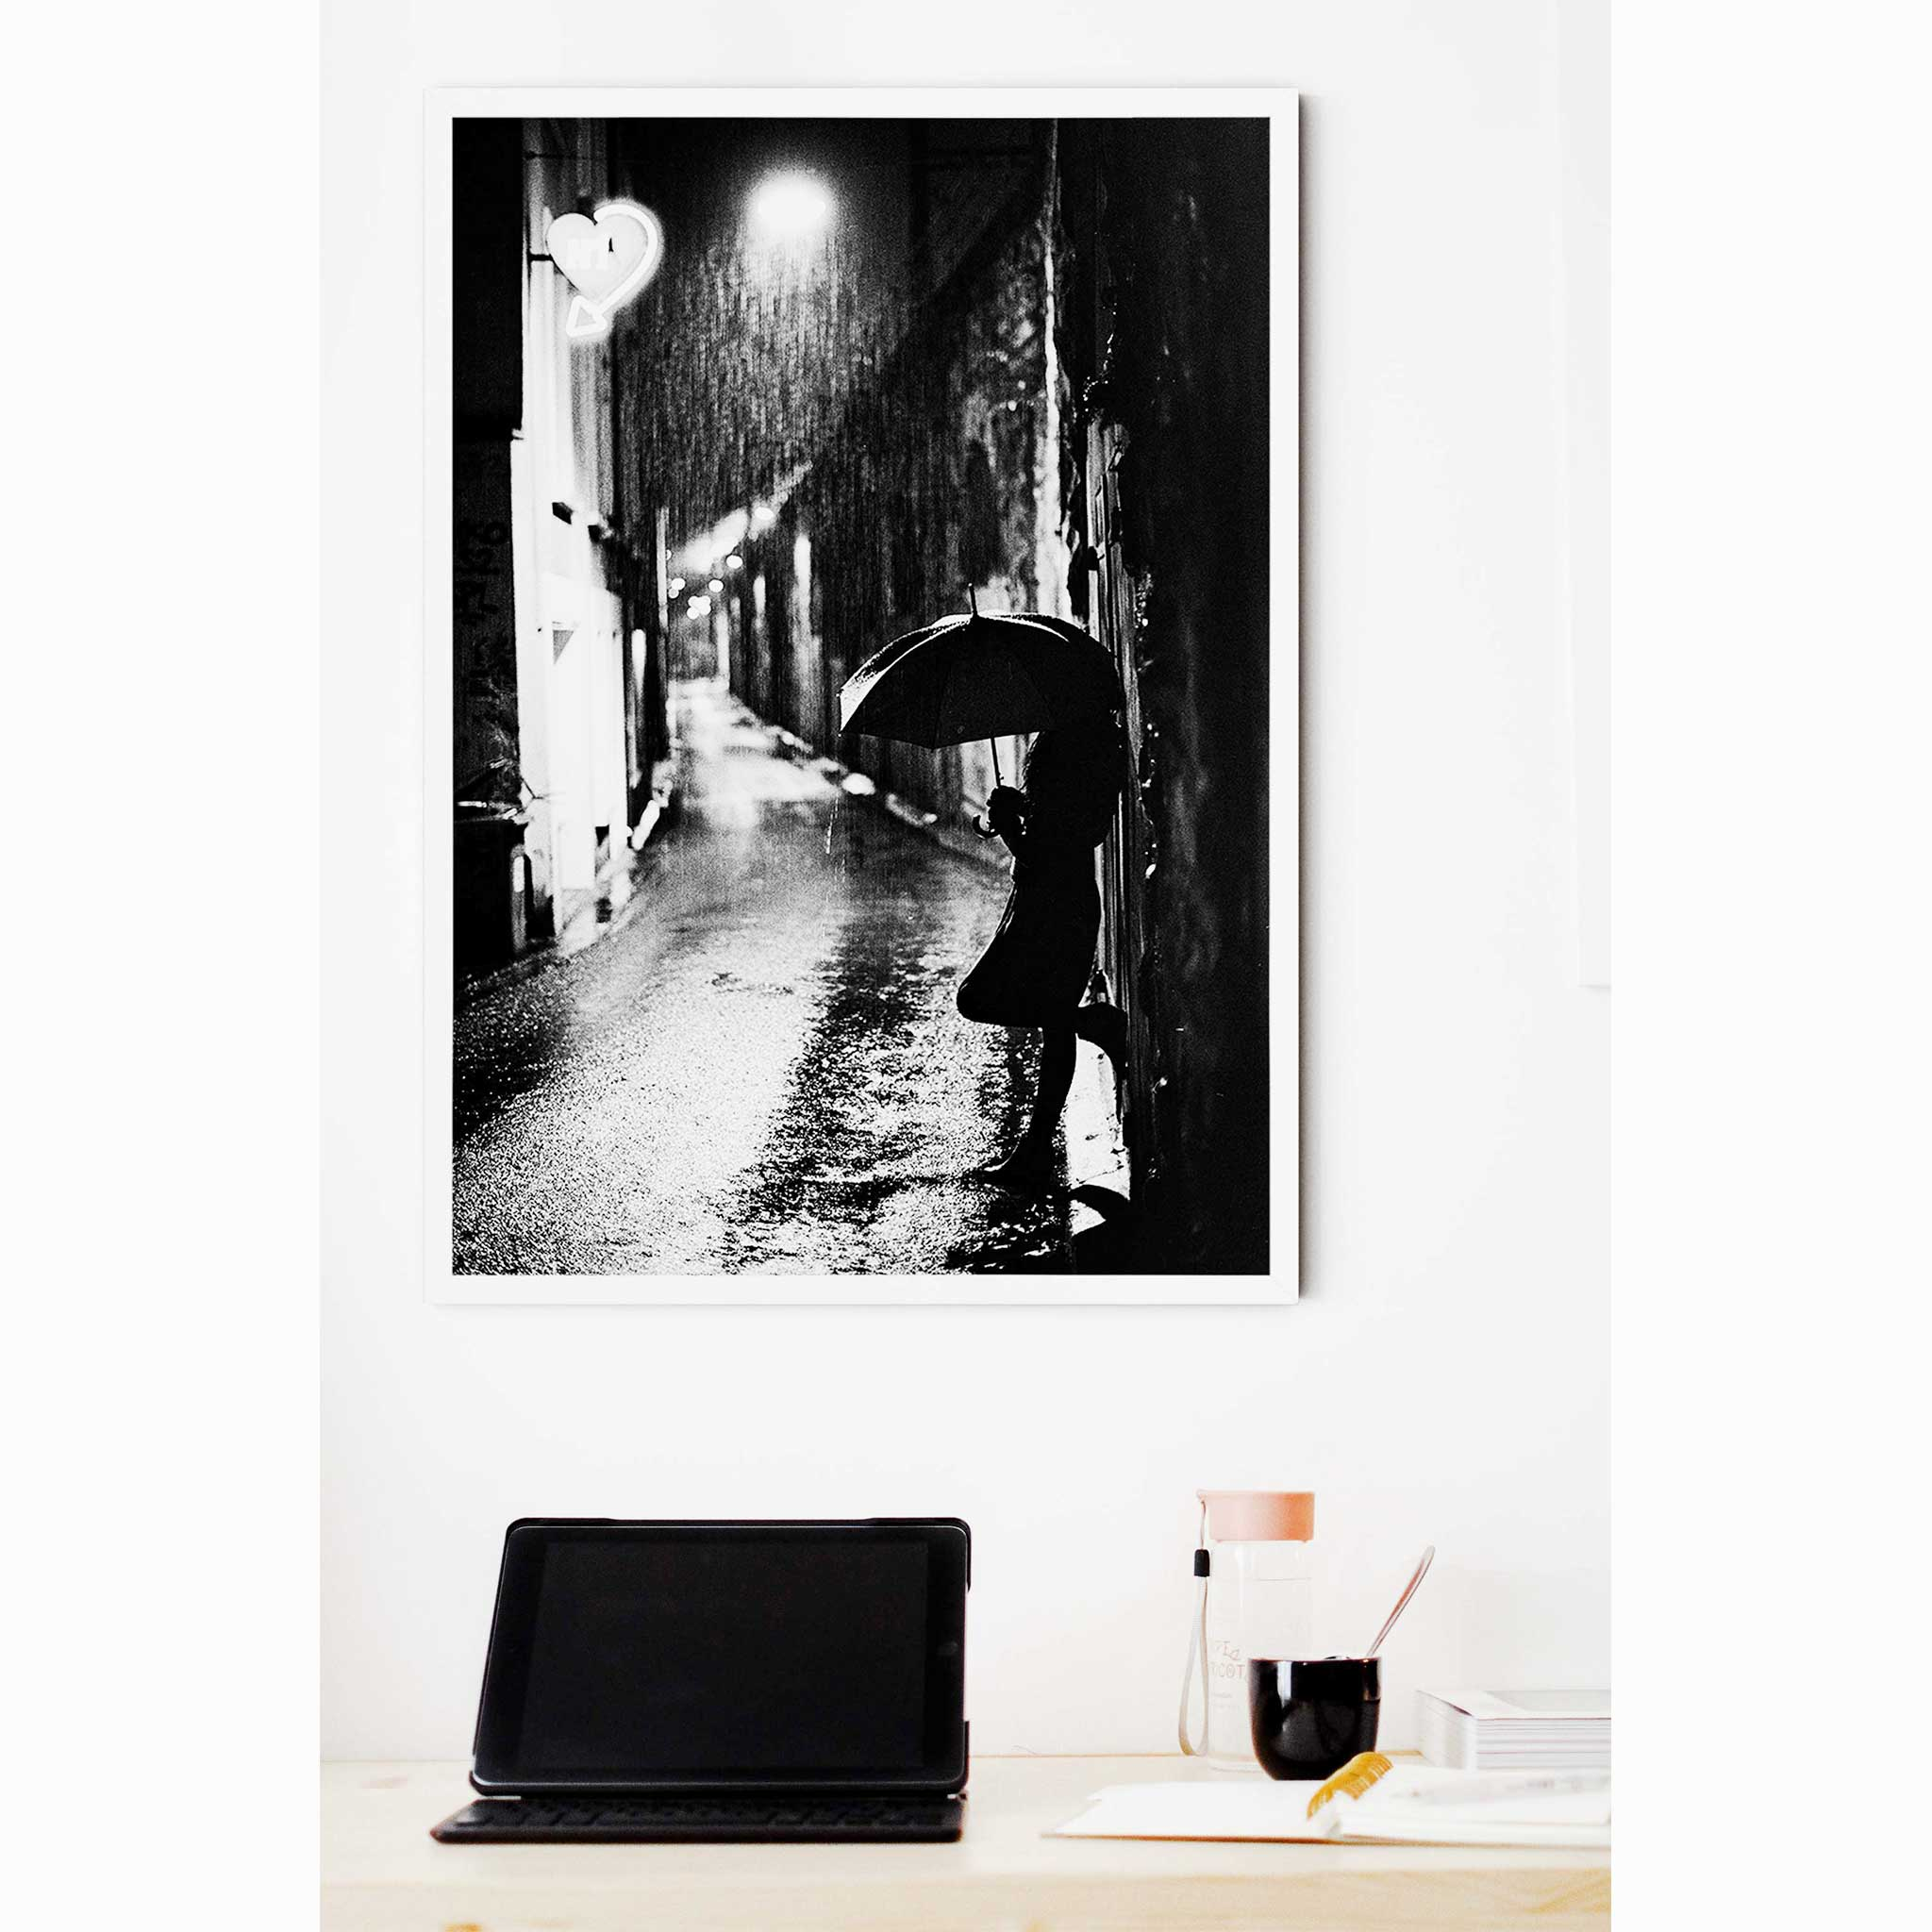 Nightstreet photo - black and white print without border in white frame on the wall